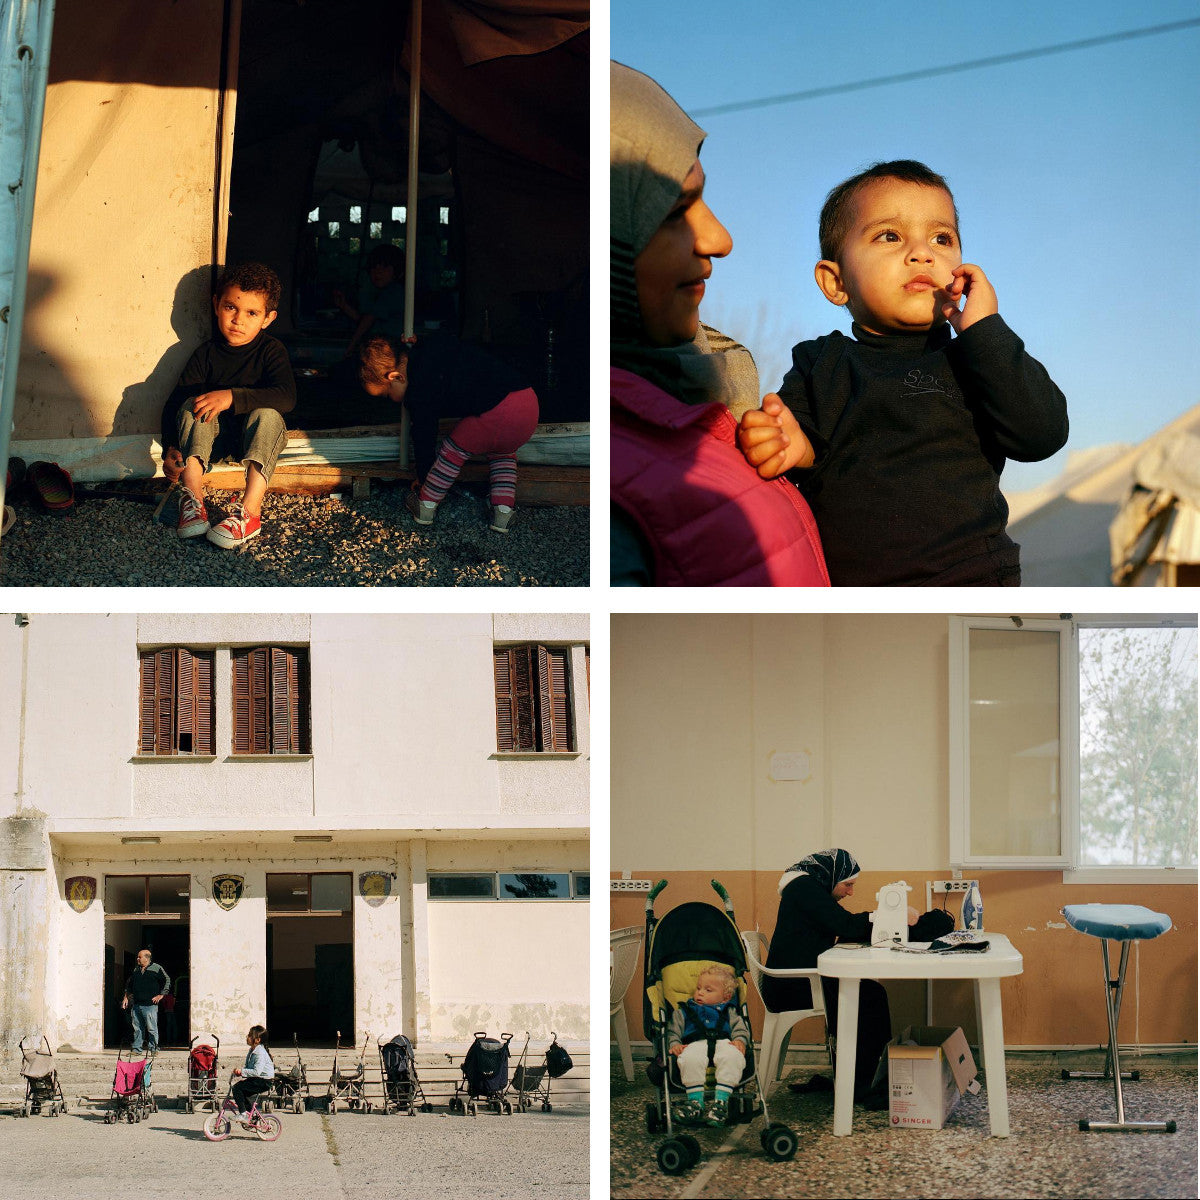 photos from The New Yorker of Refugees in Greece